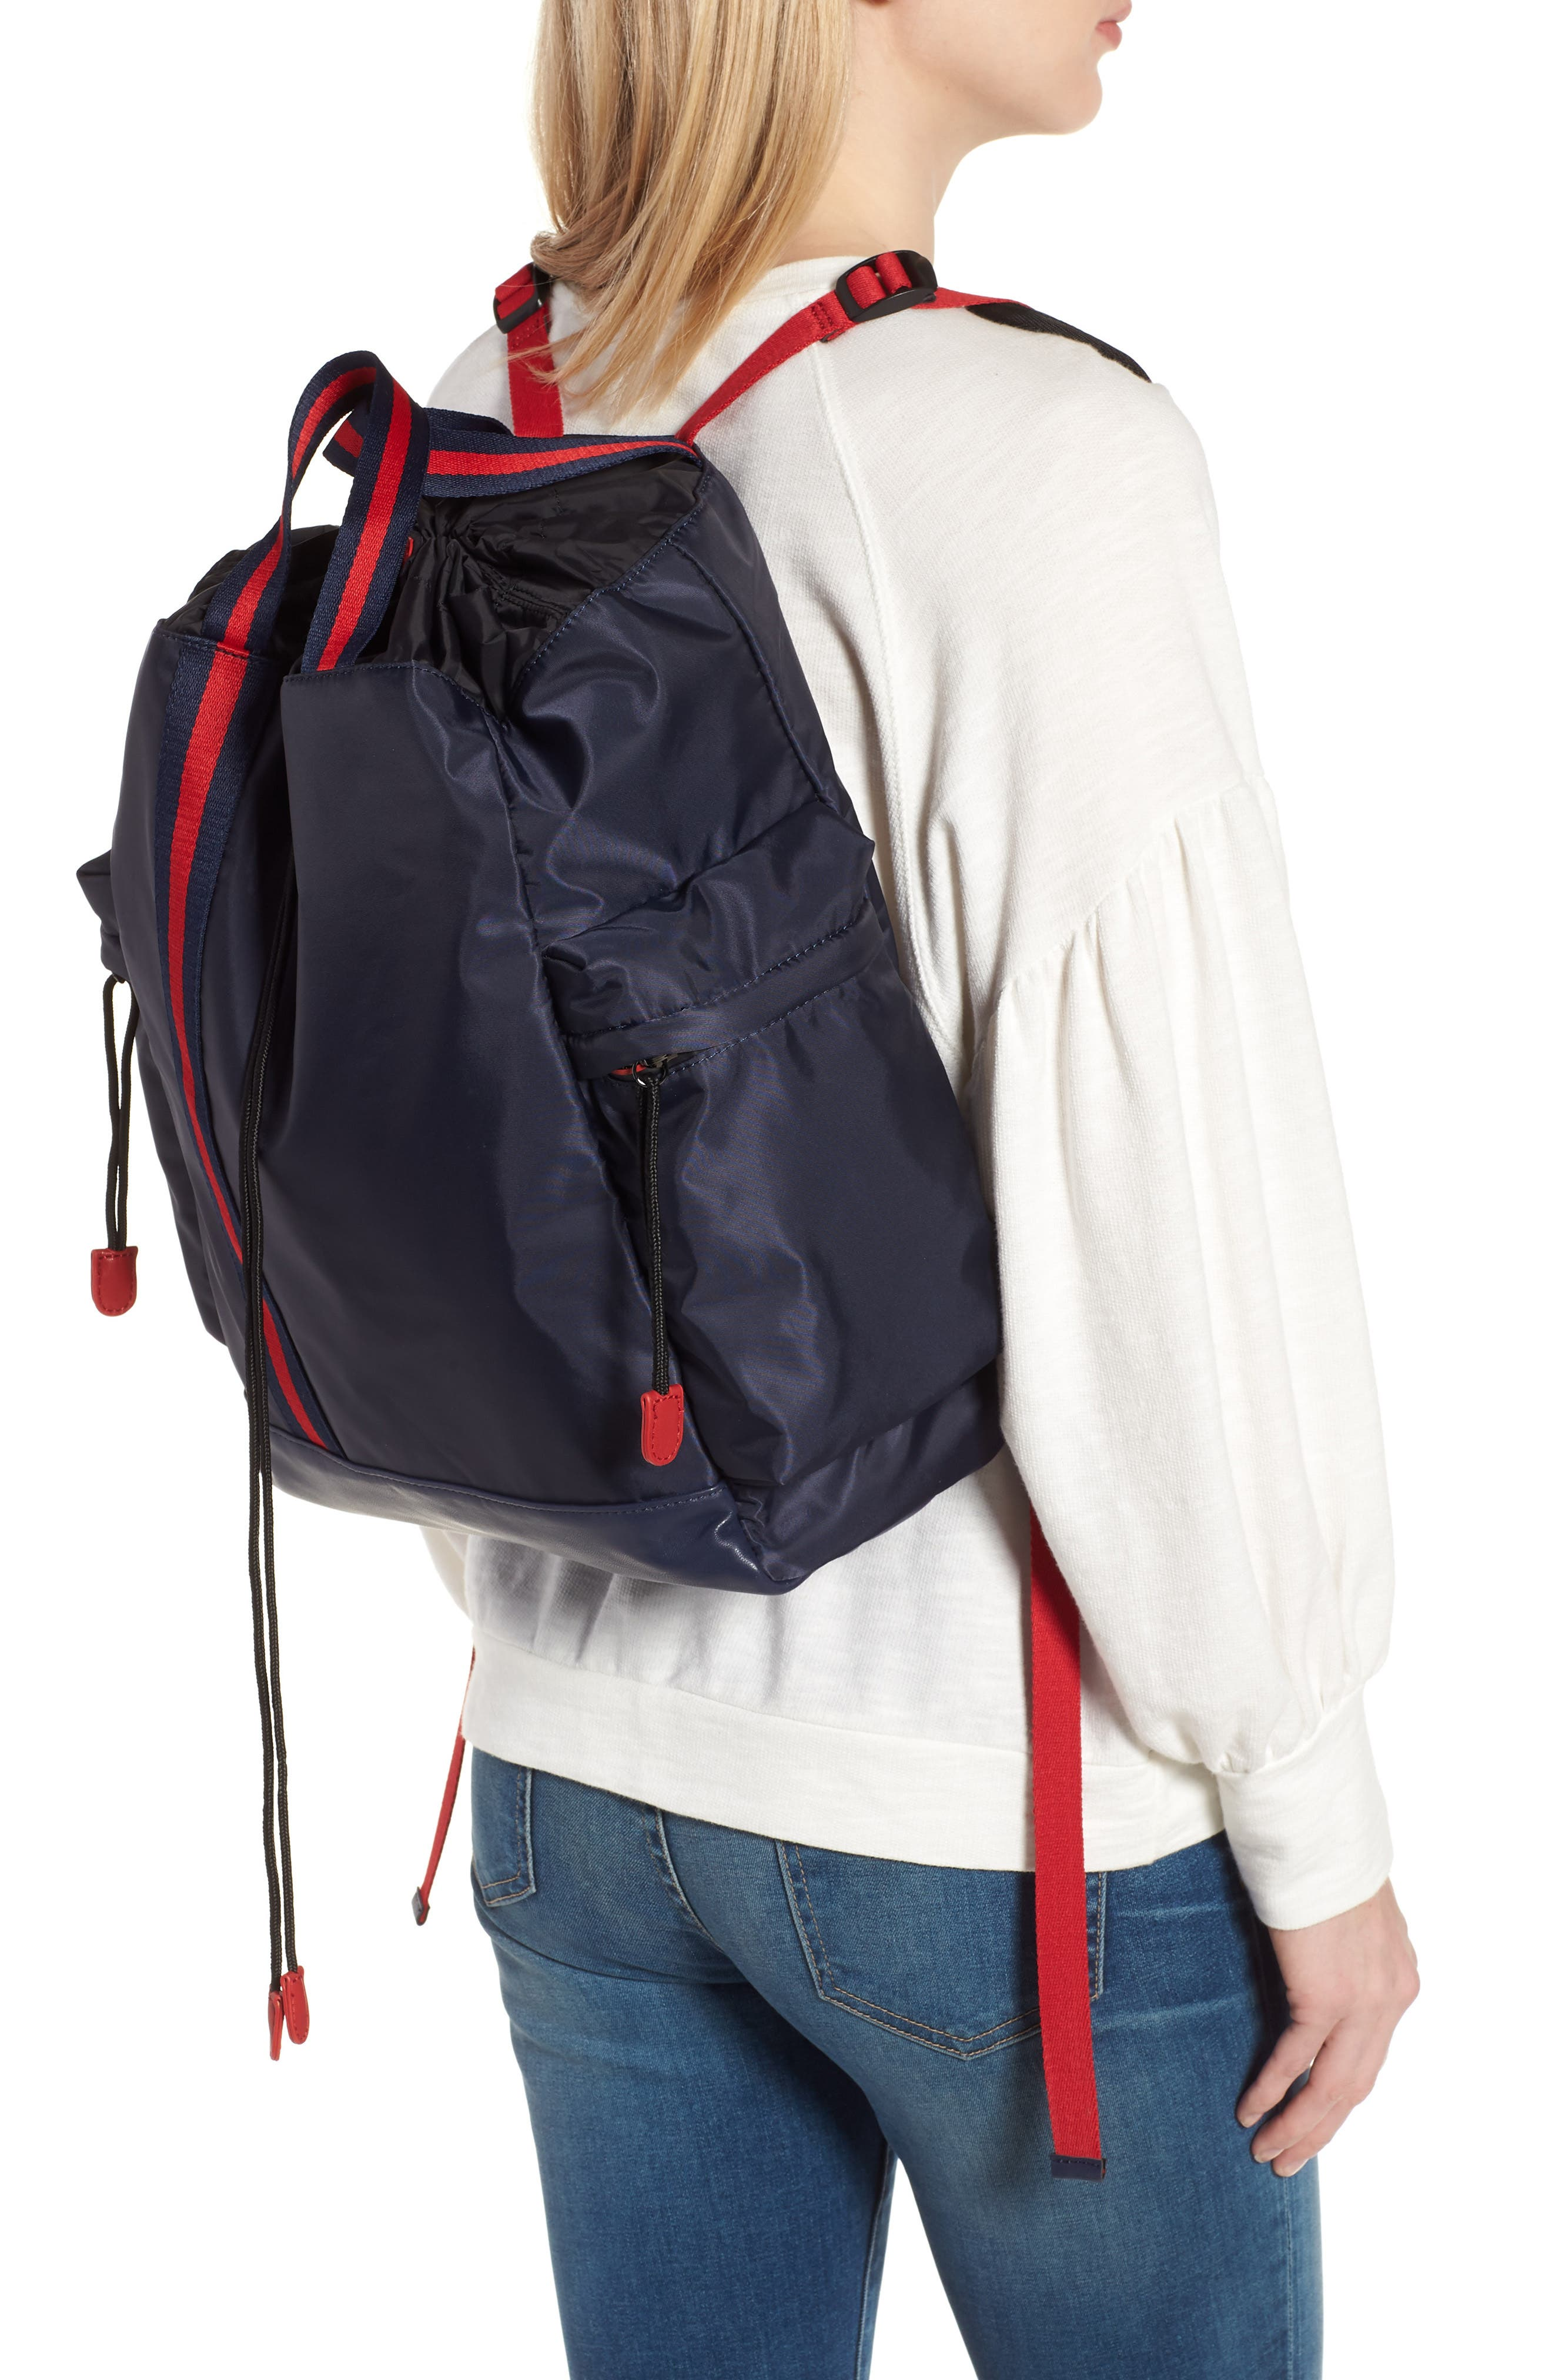 Yungg Stripe Strap Backpack,                             Alternate thumbnail 2, color,                             Navy/ Red